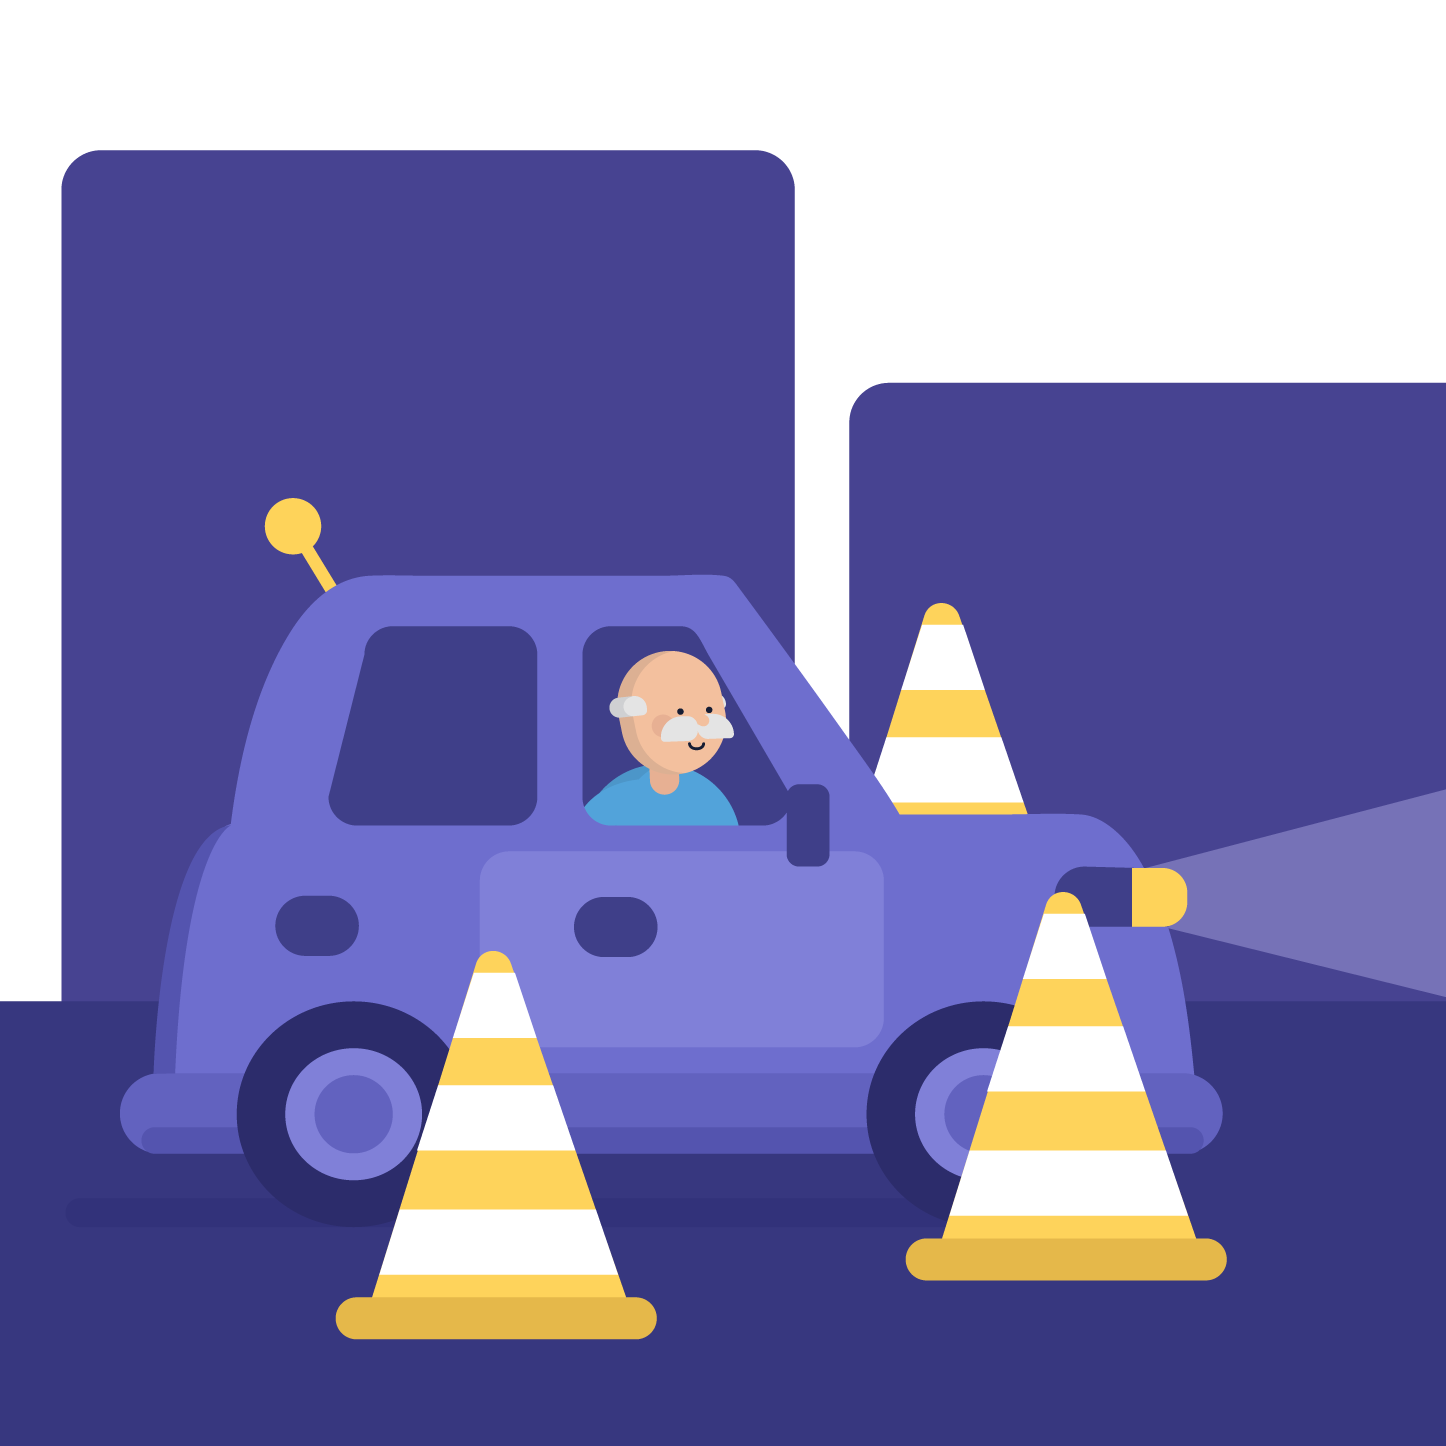 An old driver driving slowly between traffic cones